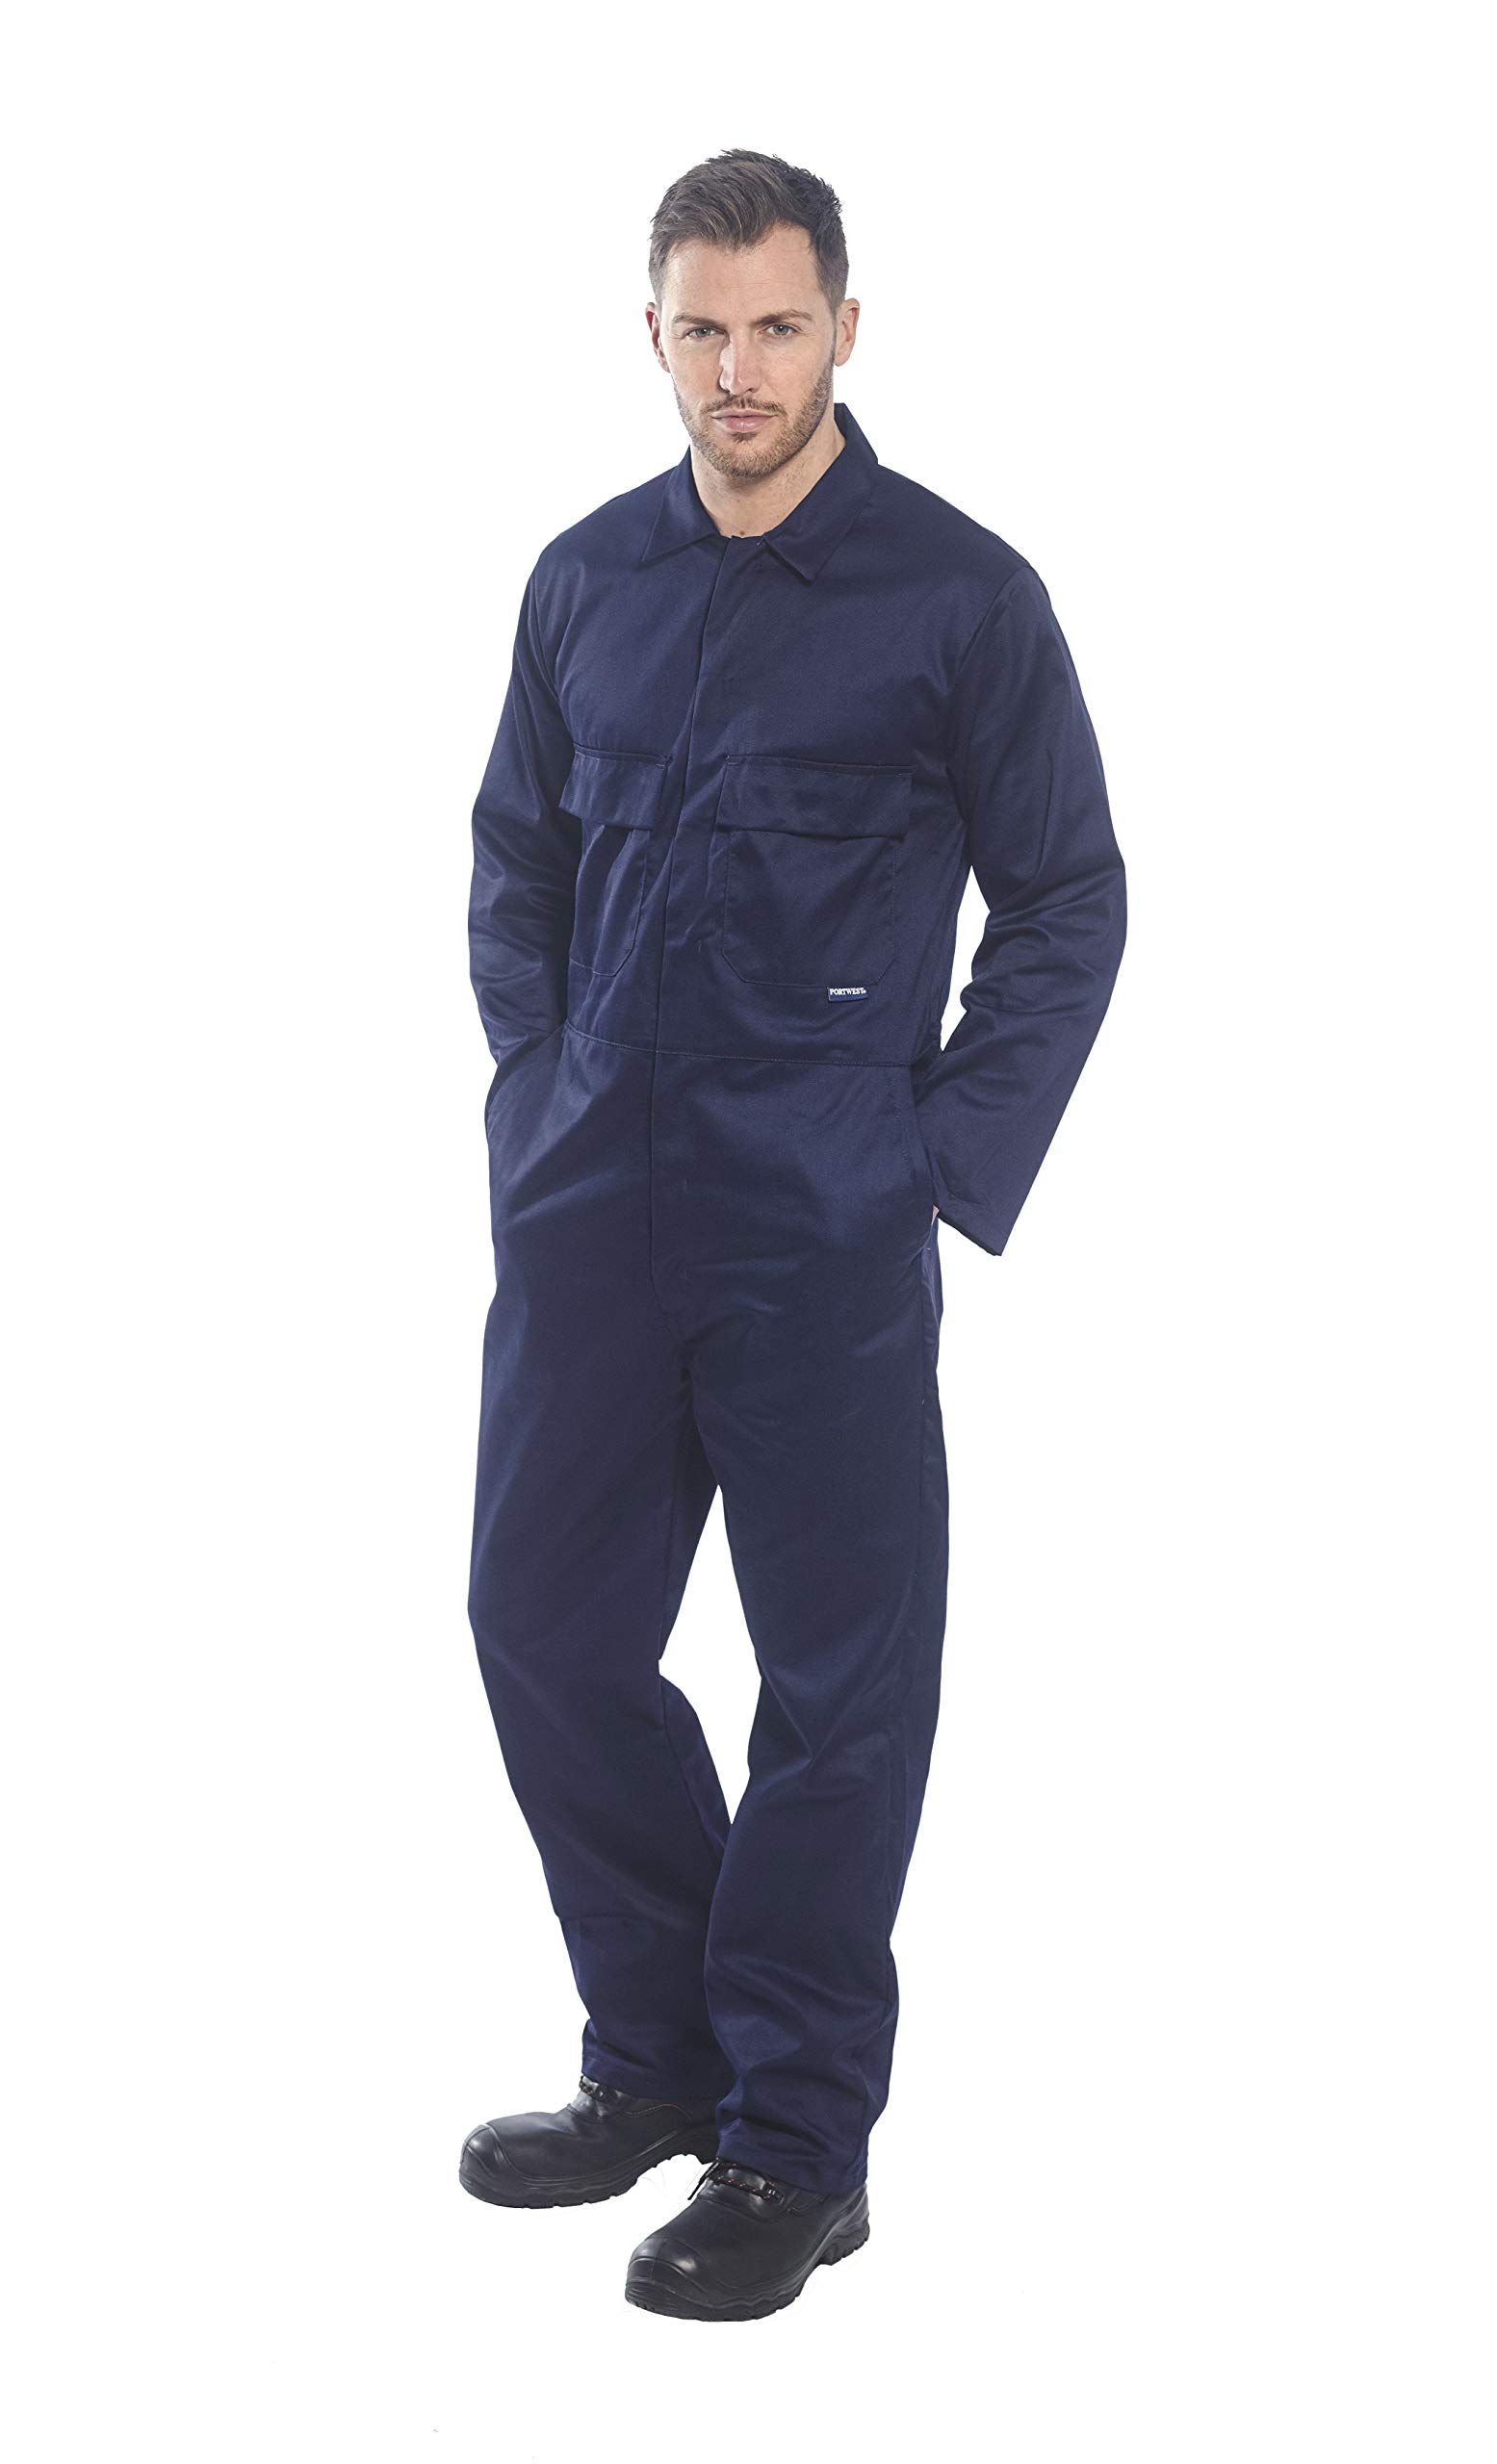 Portwest S999NARXXXL Euro Work Boilersuit, Fabric, 3X-Large, Navy by Portwest (Image #2)